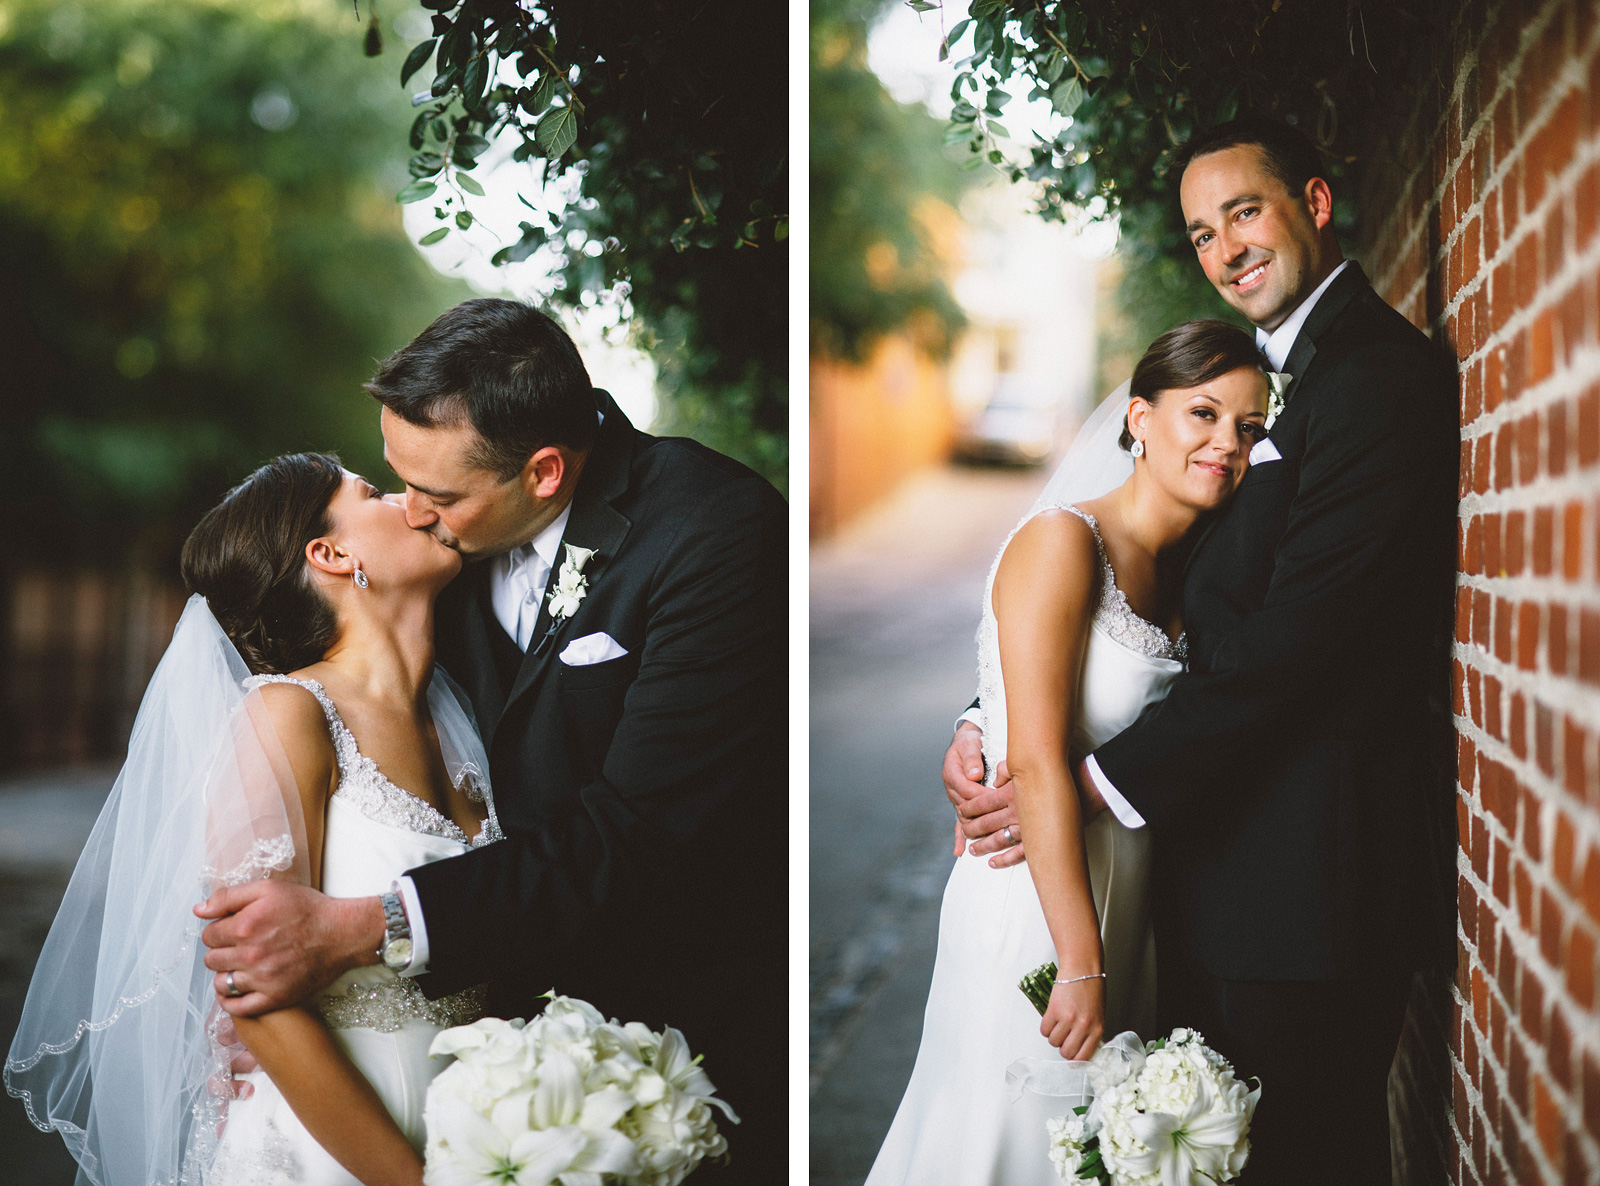 Portraits of bride and groom in the alleyway | Sacramento Firehouse Wedding